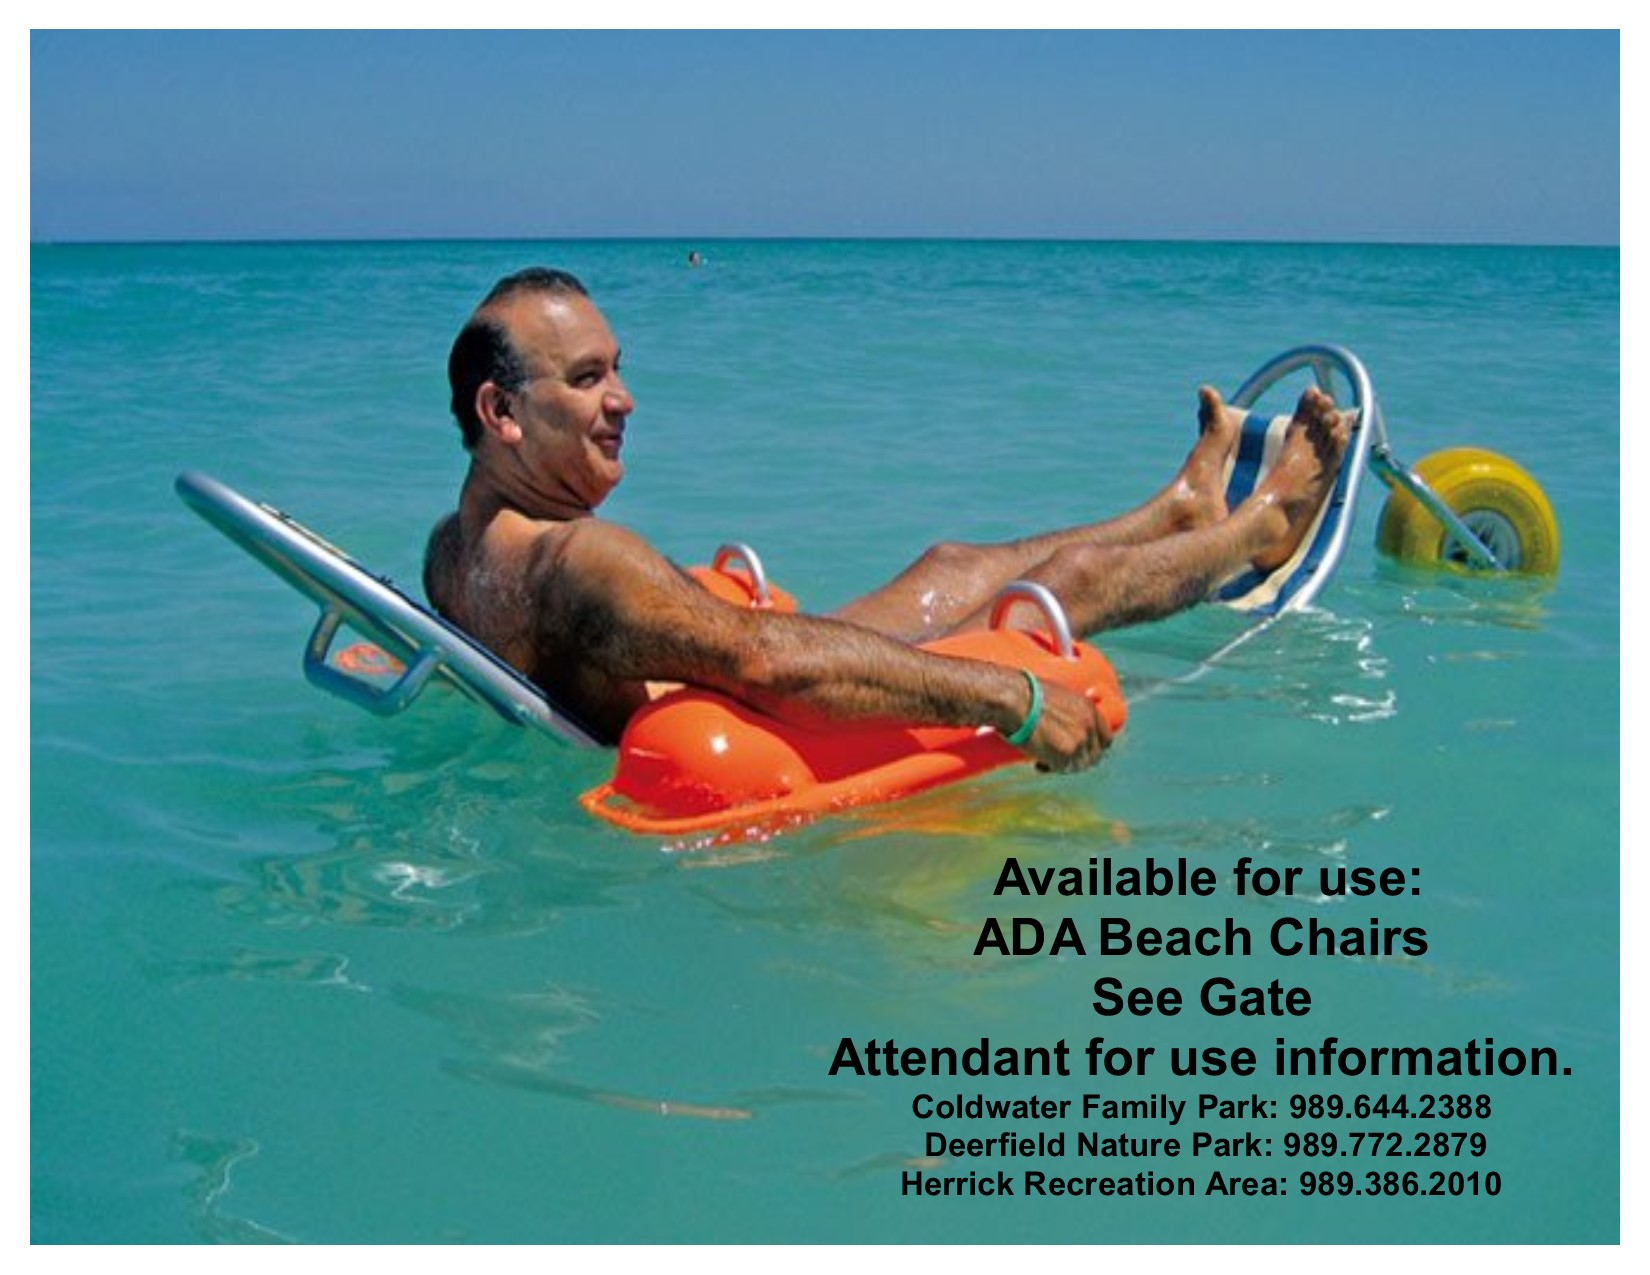 ADA Beach Chair Promotion